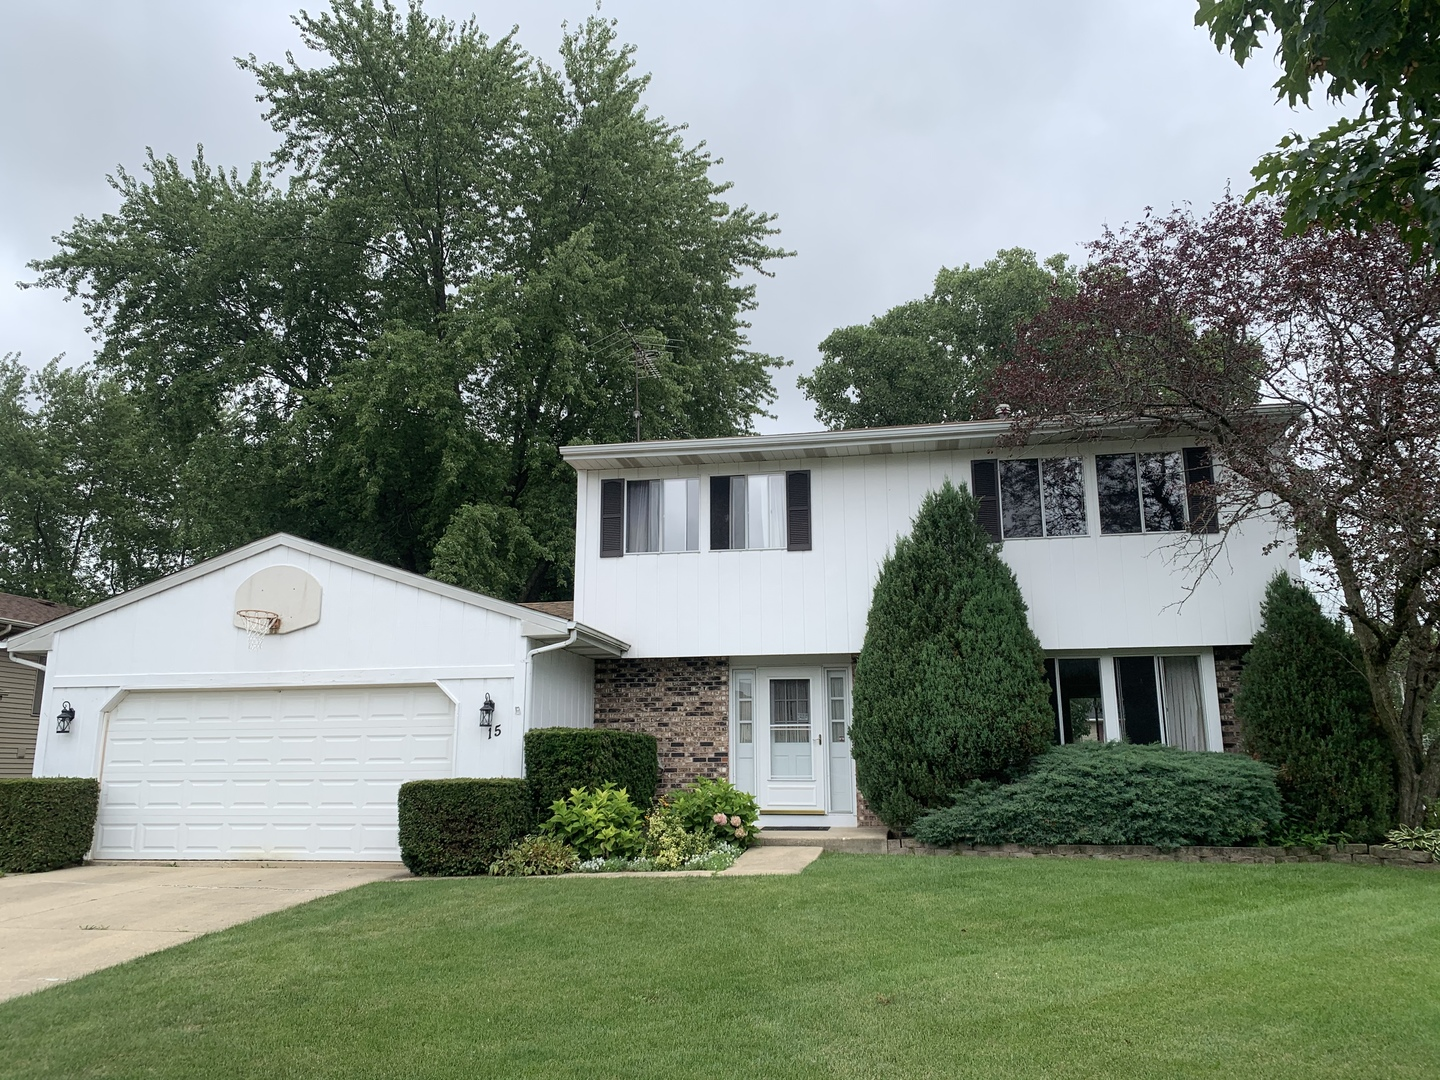 Photo for 15 Wedgewood Drive, South Elgin, IL 60177 (MLS # 10804936)